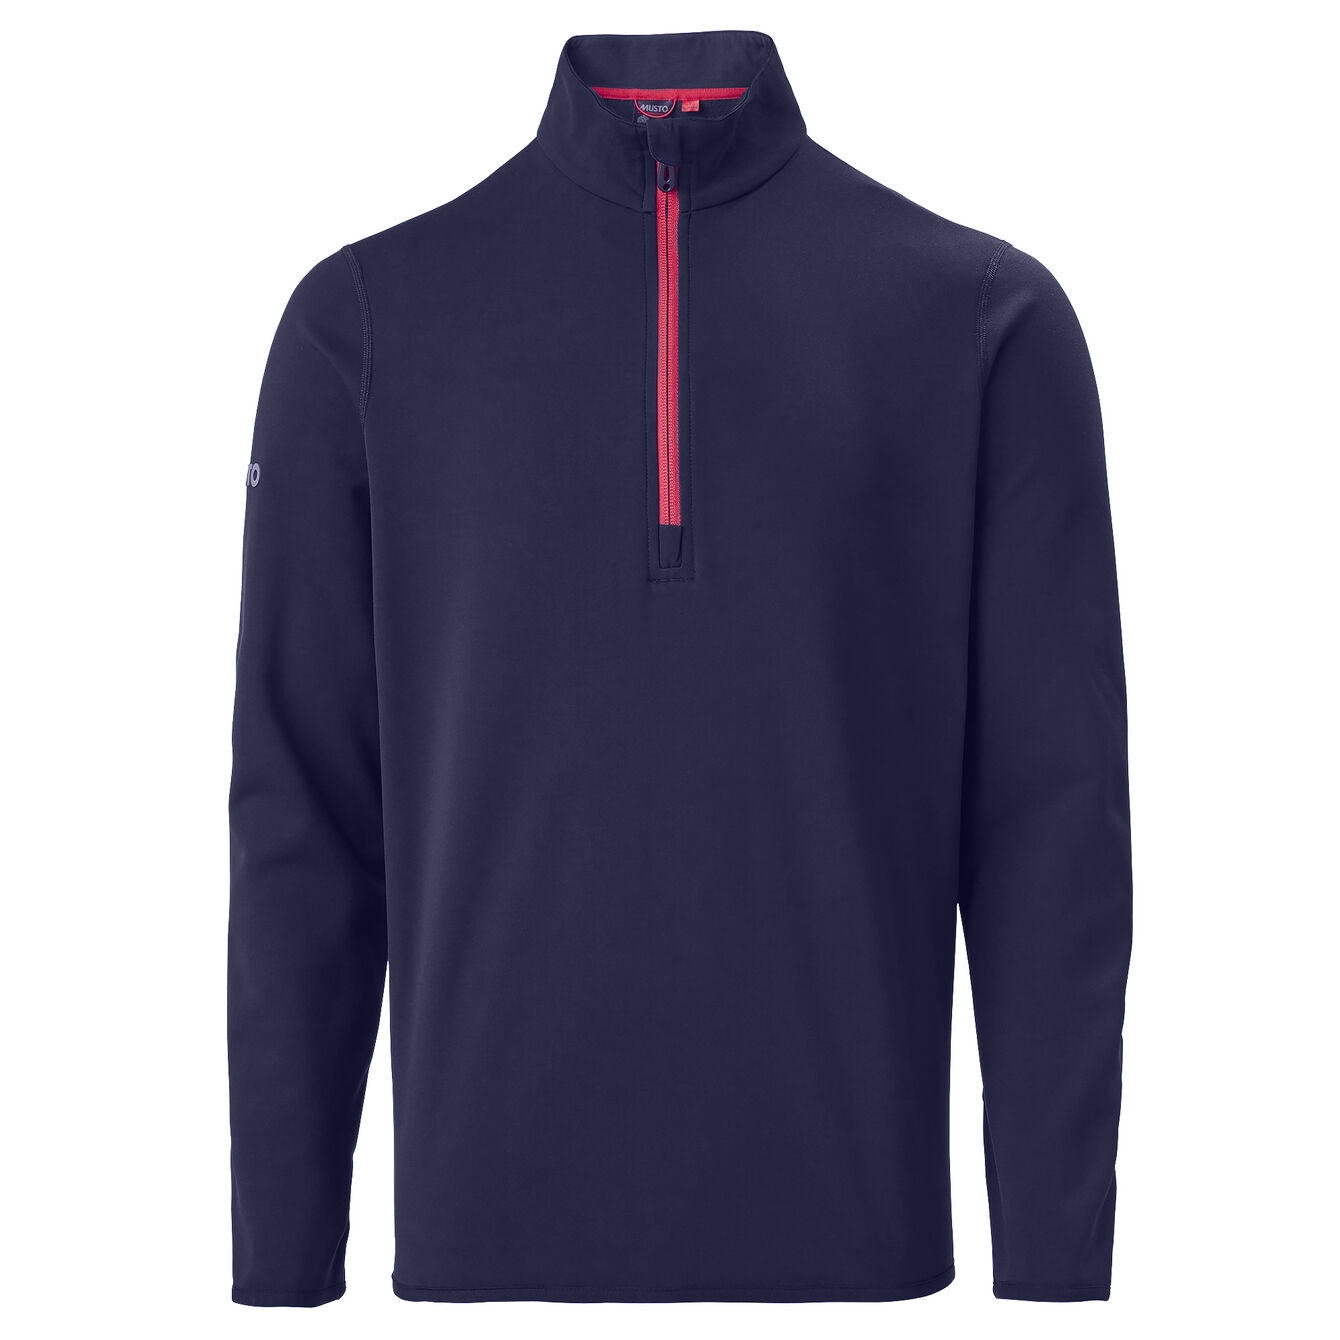 SYNERGY 1/2 ZIP MICROFLEECE